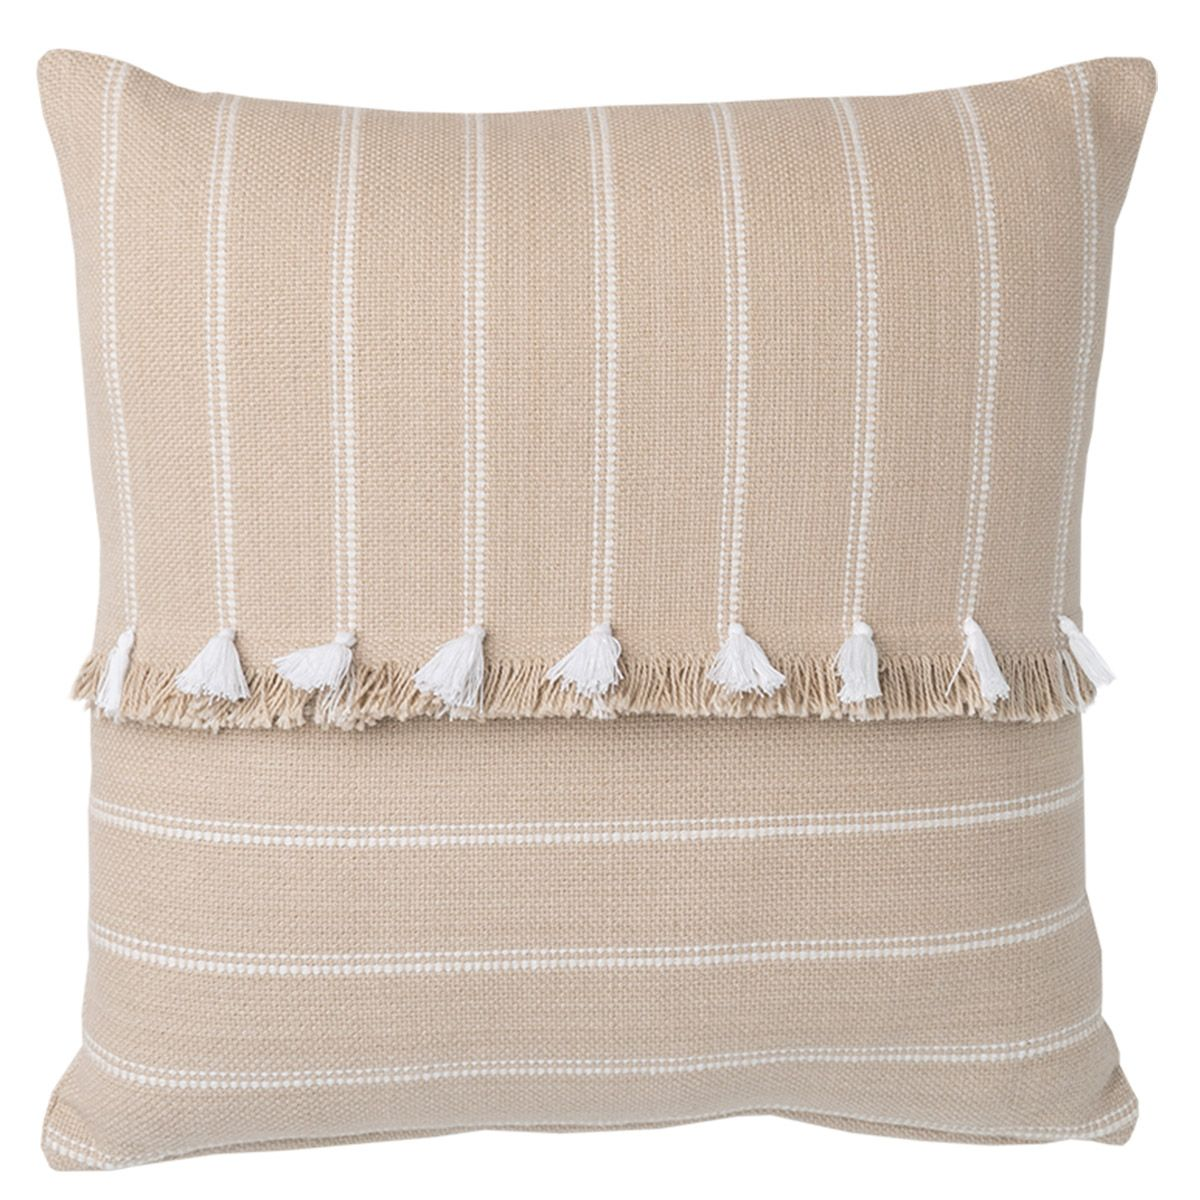 Arida Cushion w/ Fringe & Detail by Oz Design Furniture, a Cushions, Decorative Pillows for sale on Style Sourcebook